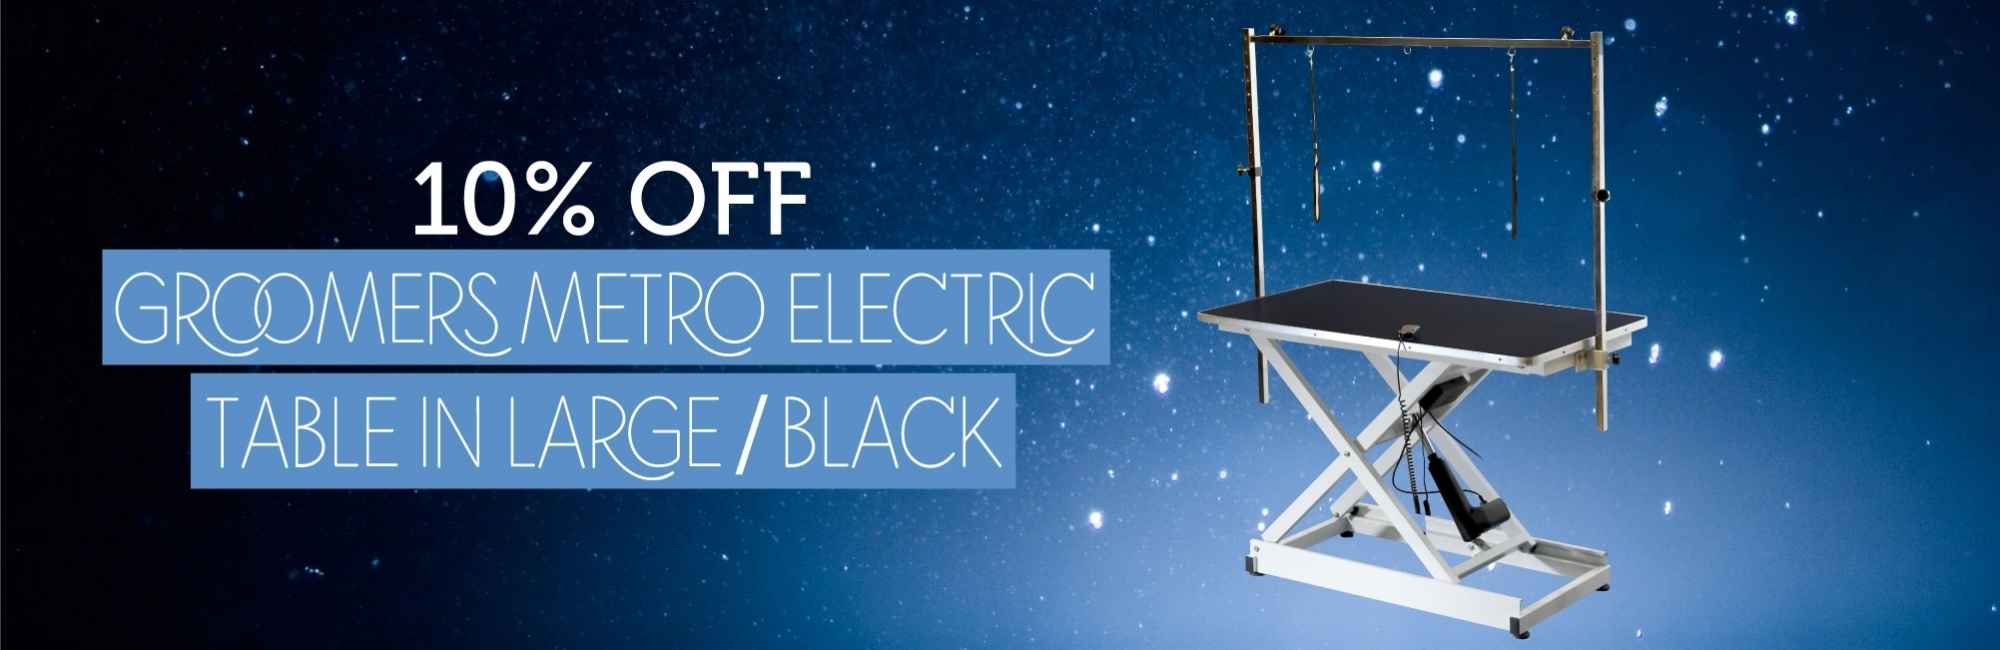 10% OFF Groomers Metro Electric Table